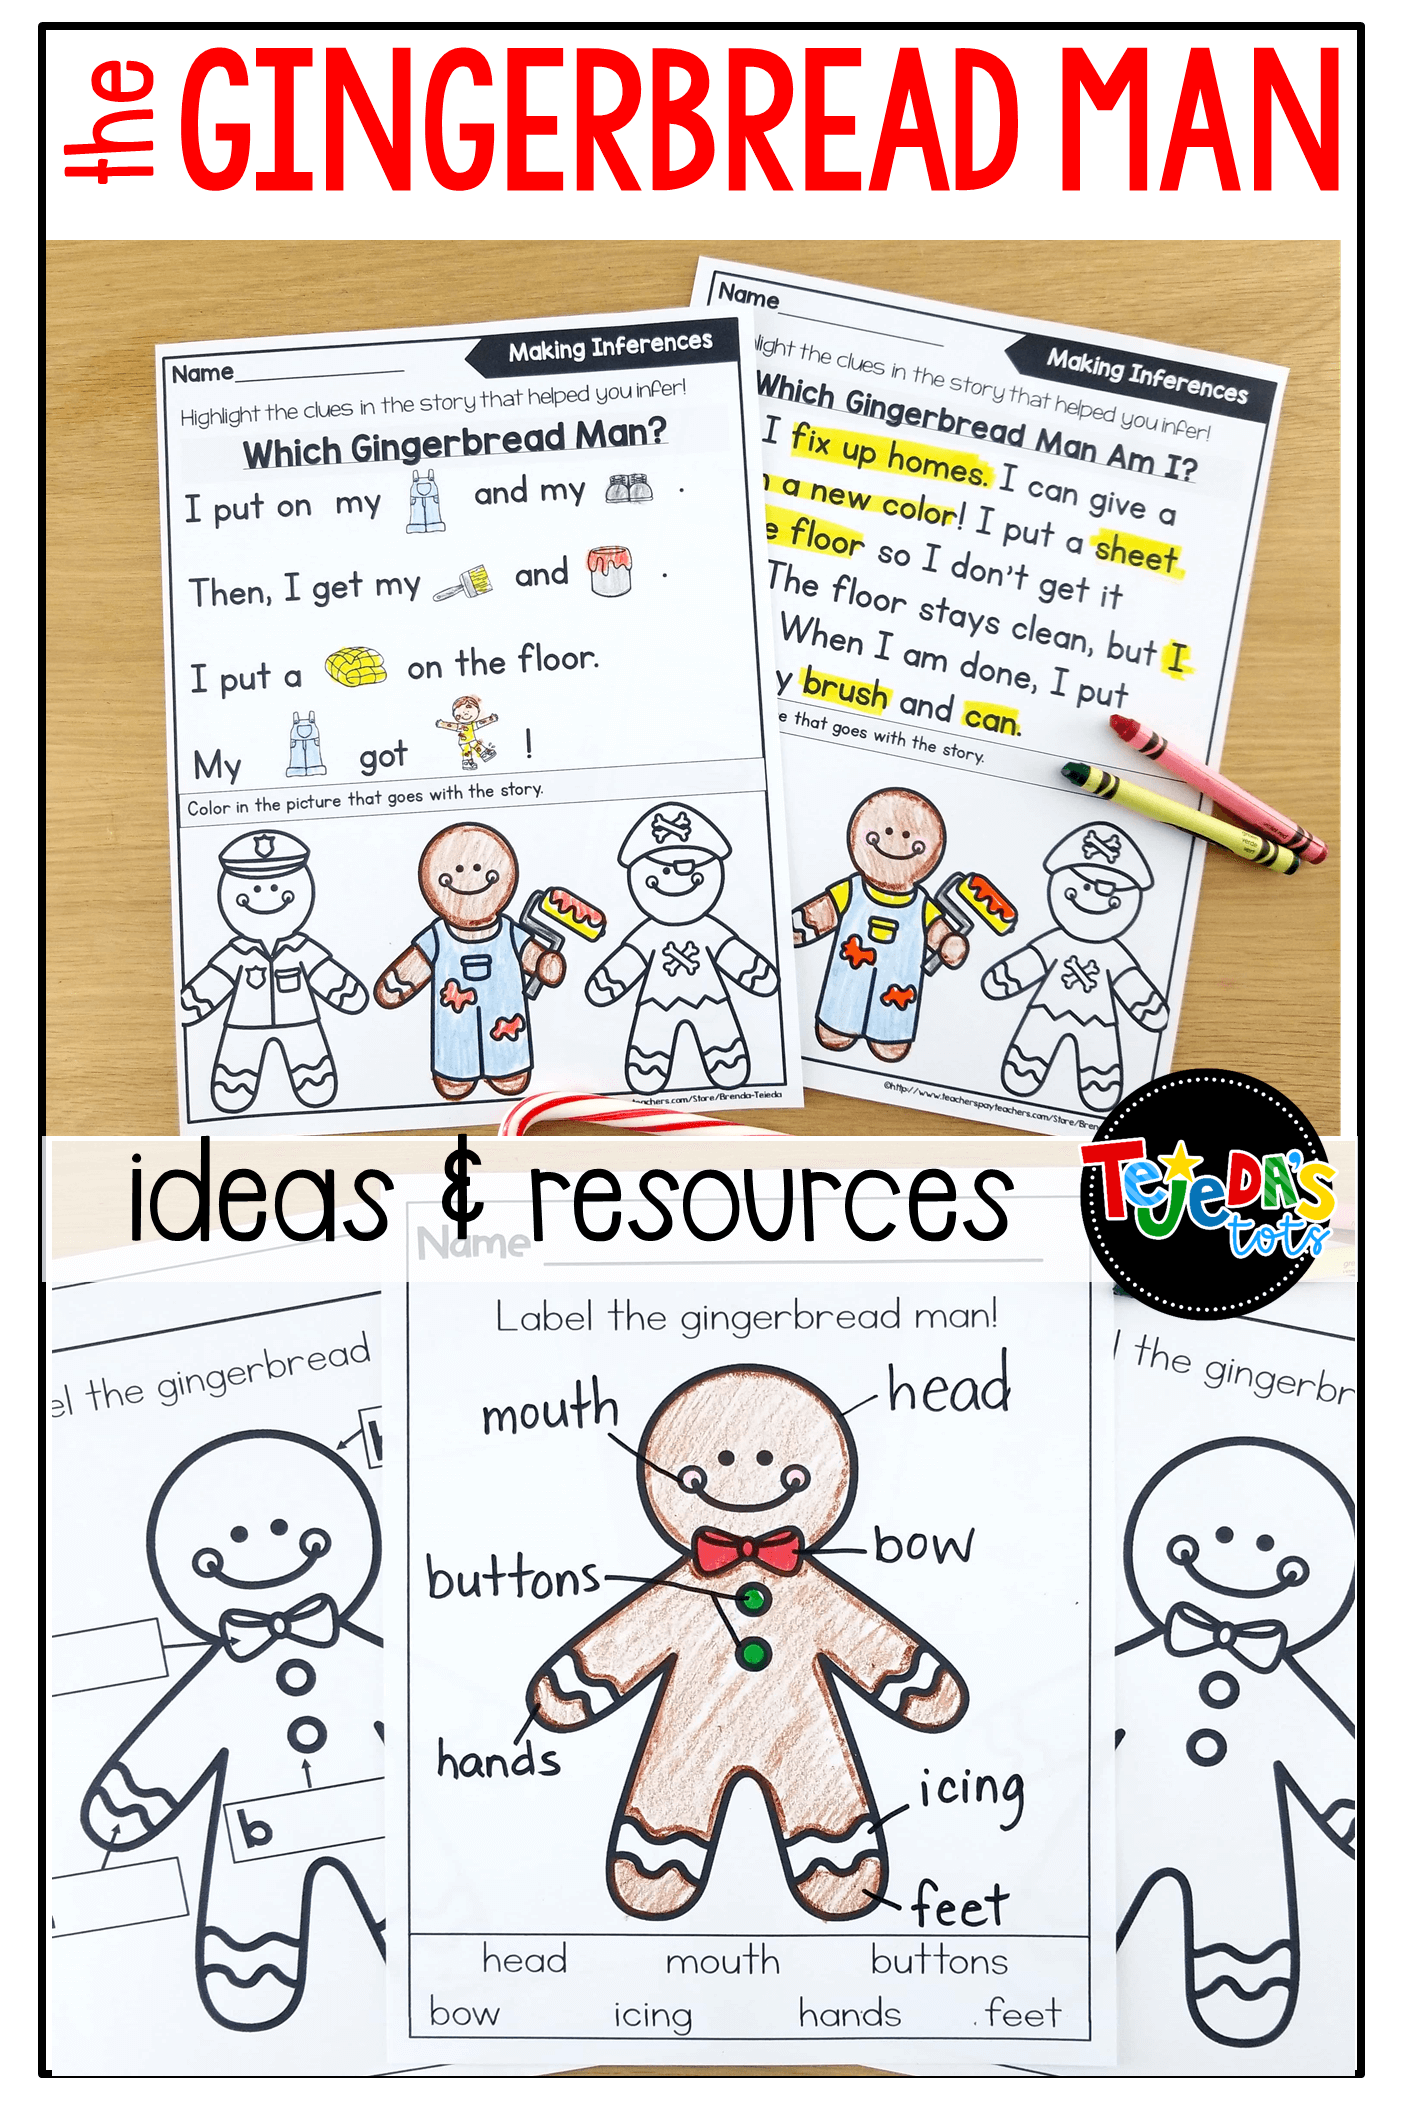 Ideas and resources for a fun gingerbread man unit, including comparing and contrasting different versions, retelling, centers, mini-books, and more! #tejedastots #gingerbreadmanactivities